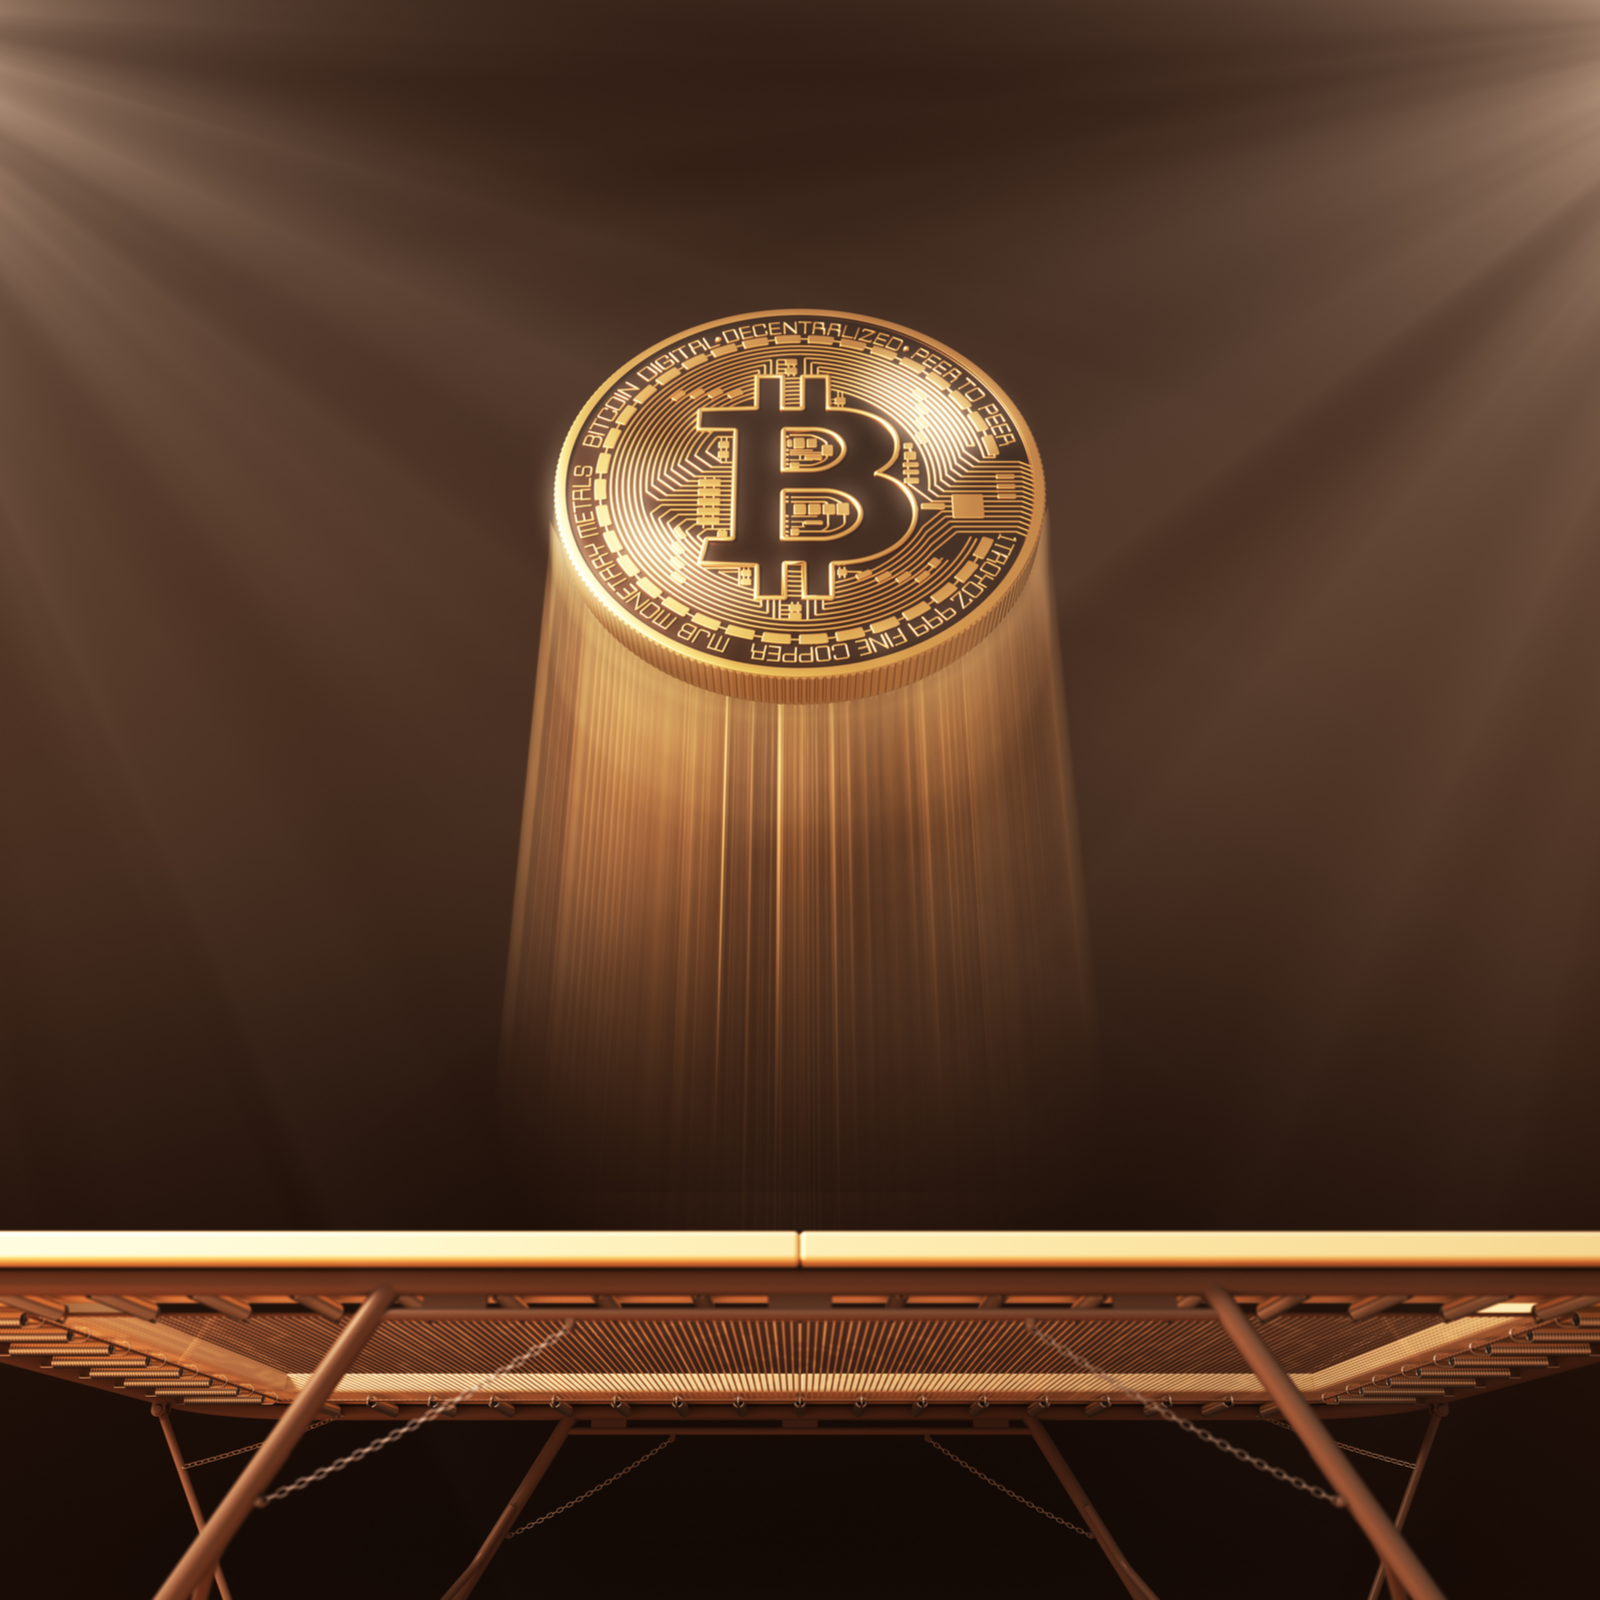 https://news.btctest.net/heres-what-you-should-know-about-cboes-bitcoin-futures-launch/